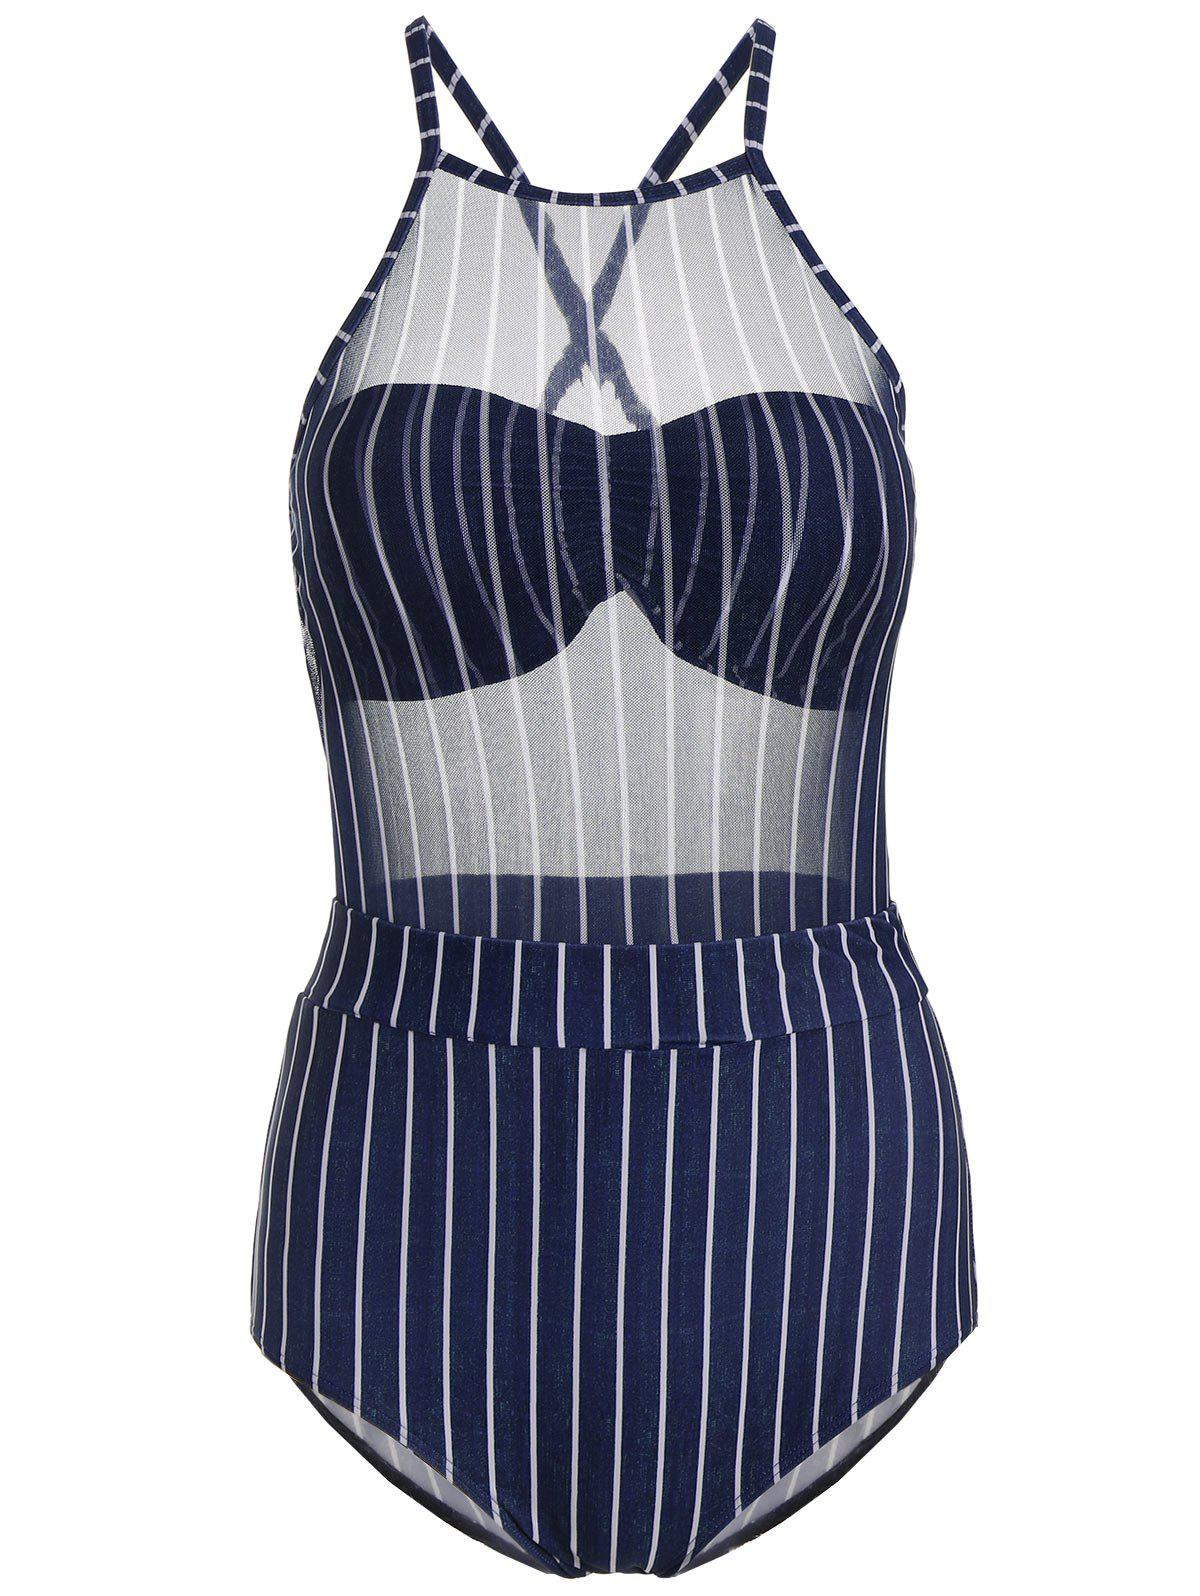 Mesh Sheer Striped Underwire Swimsuit - DEEP BLUE L